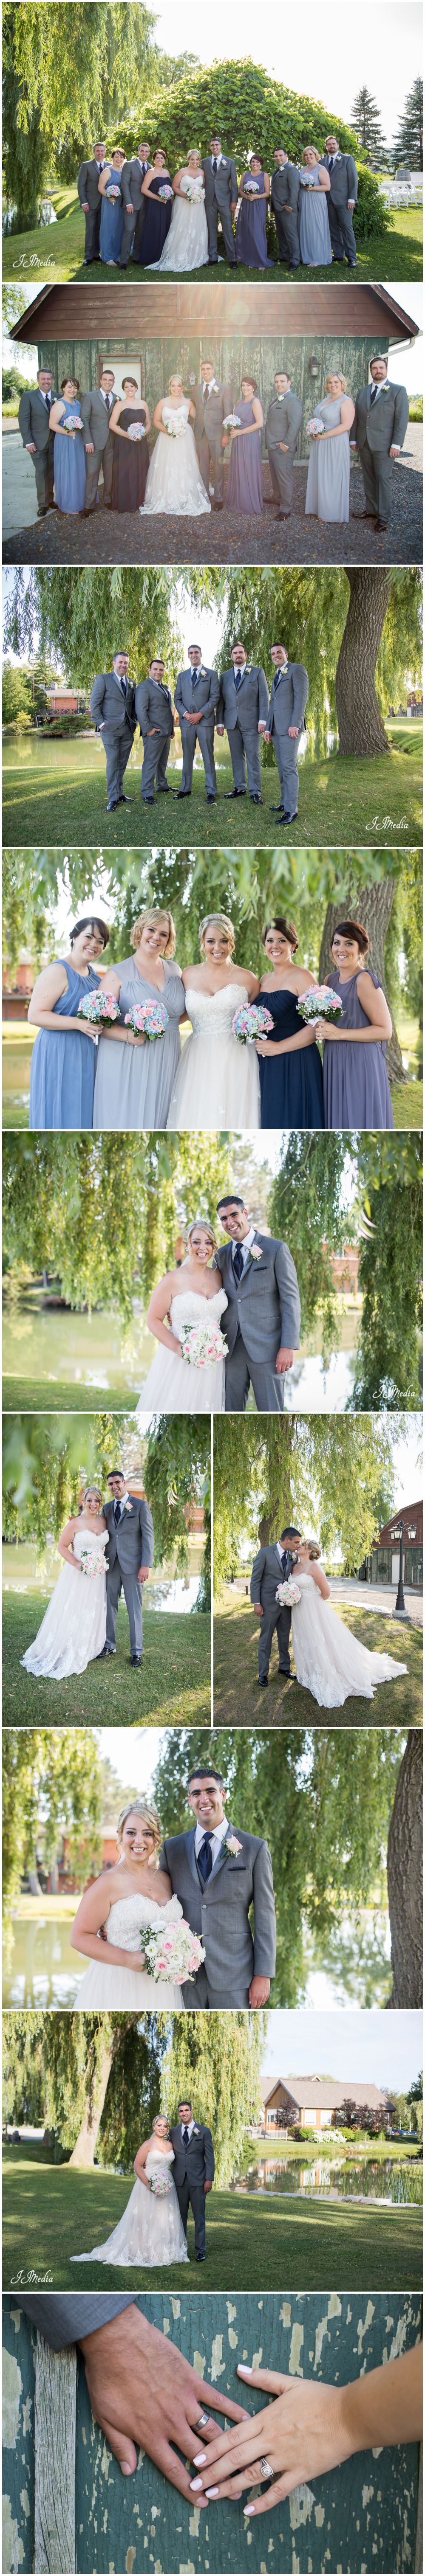 Willow_Springs_Winery_Wedding_JJMedia-8